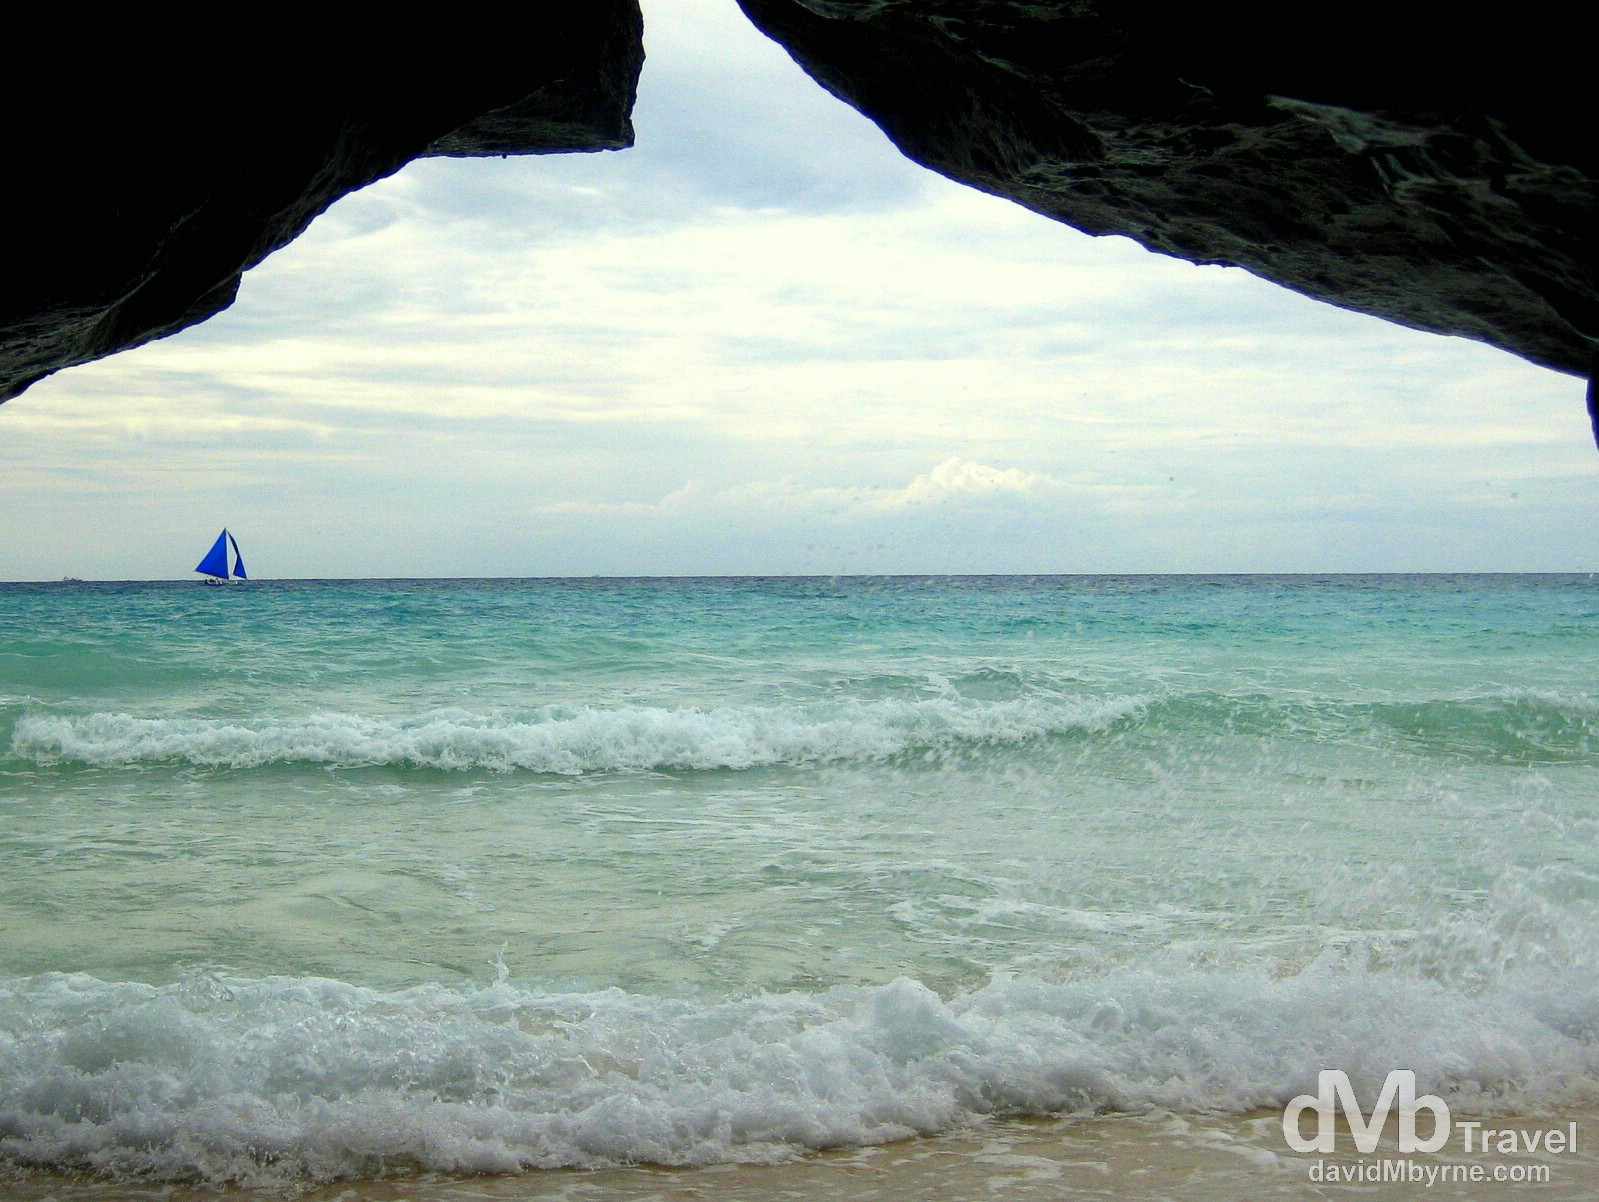 Taken from the inside for a small cave on Puka Beach, Boracay Island, Philippines. September 24th 2011.